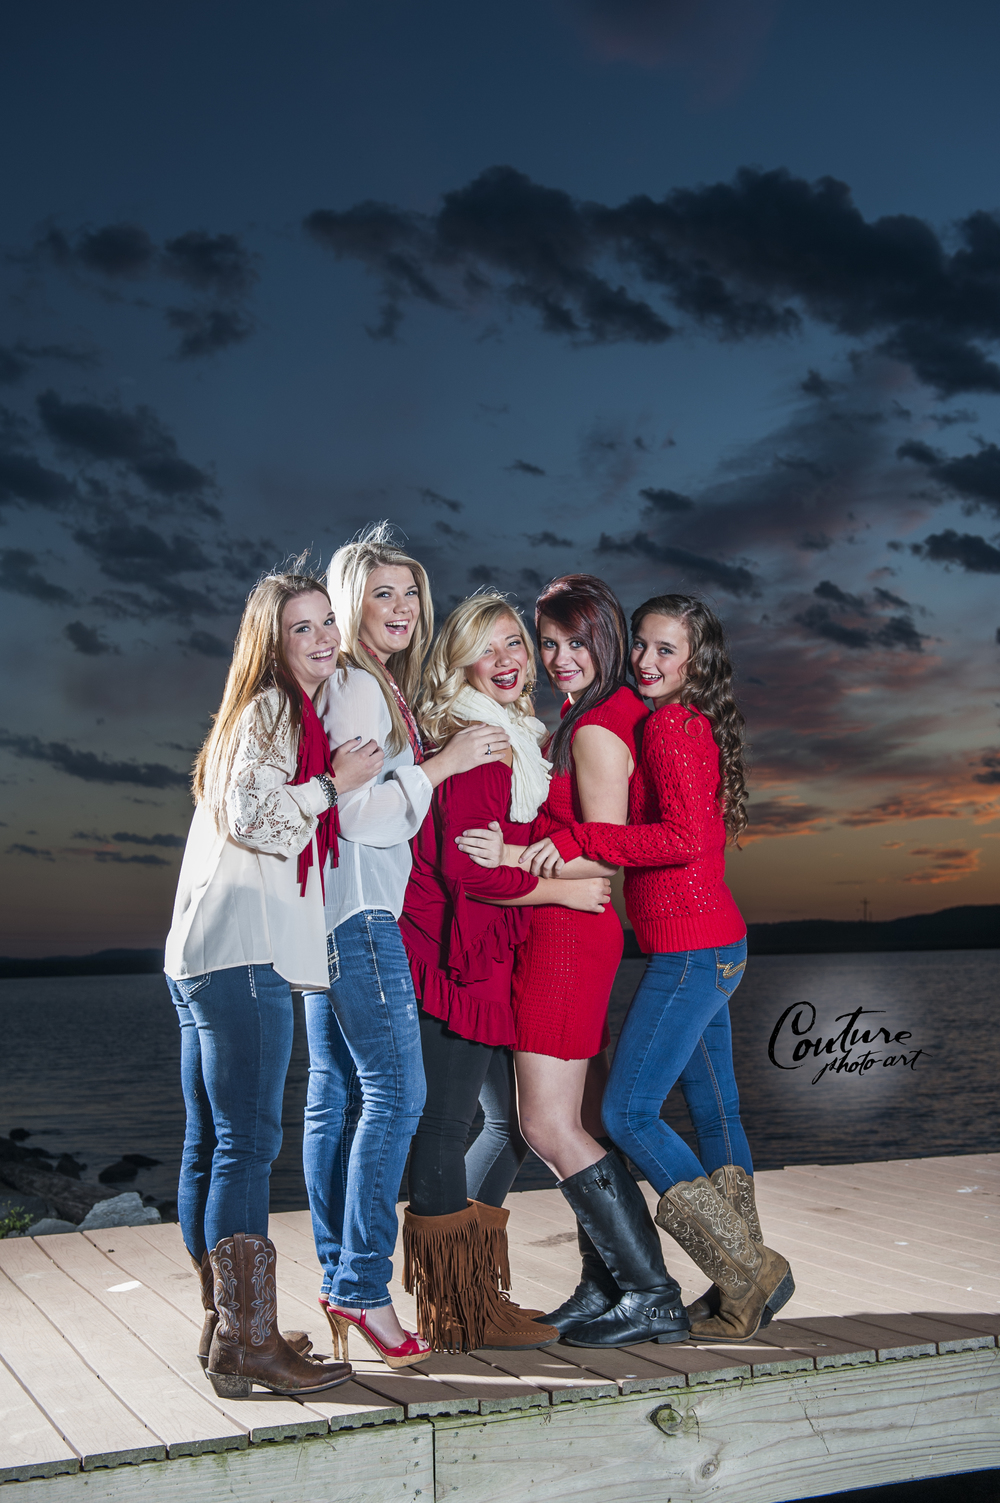 Pictured from Left to Right: Zena, Hope, Myranda, Madison, and Brittany.